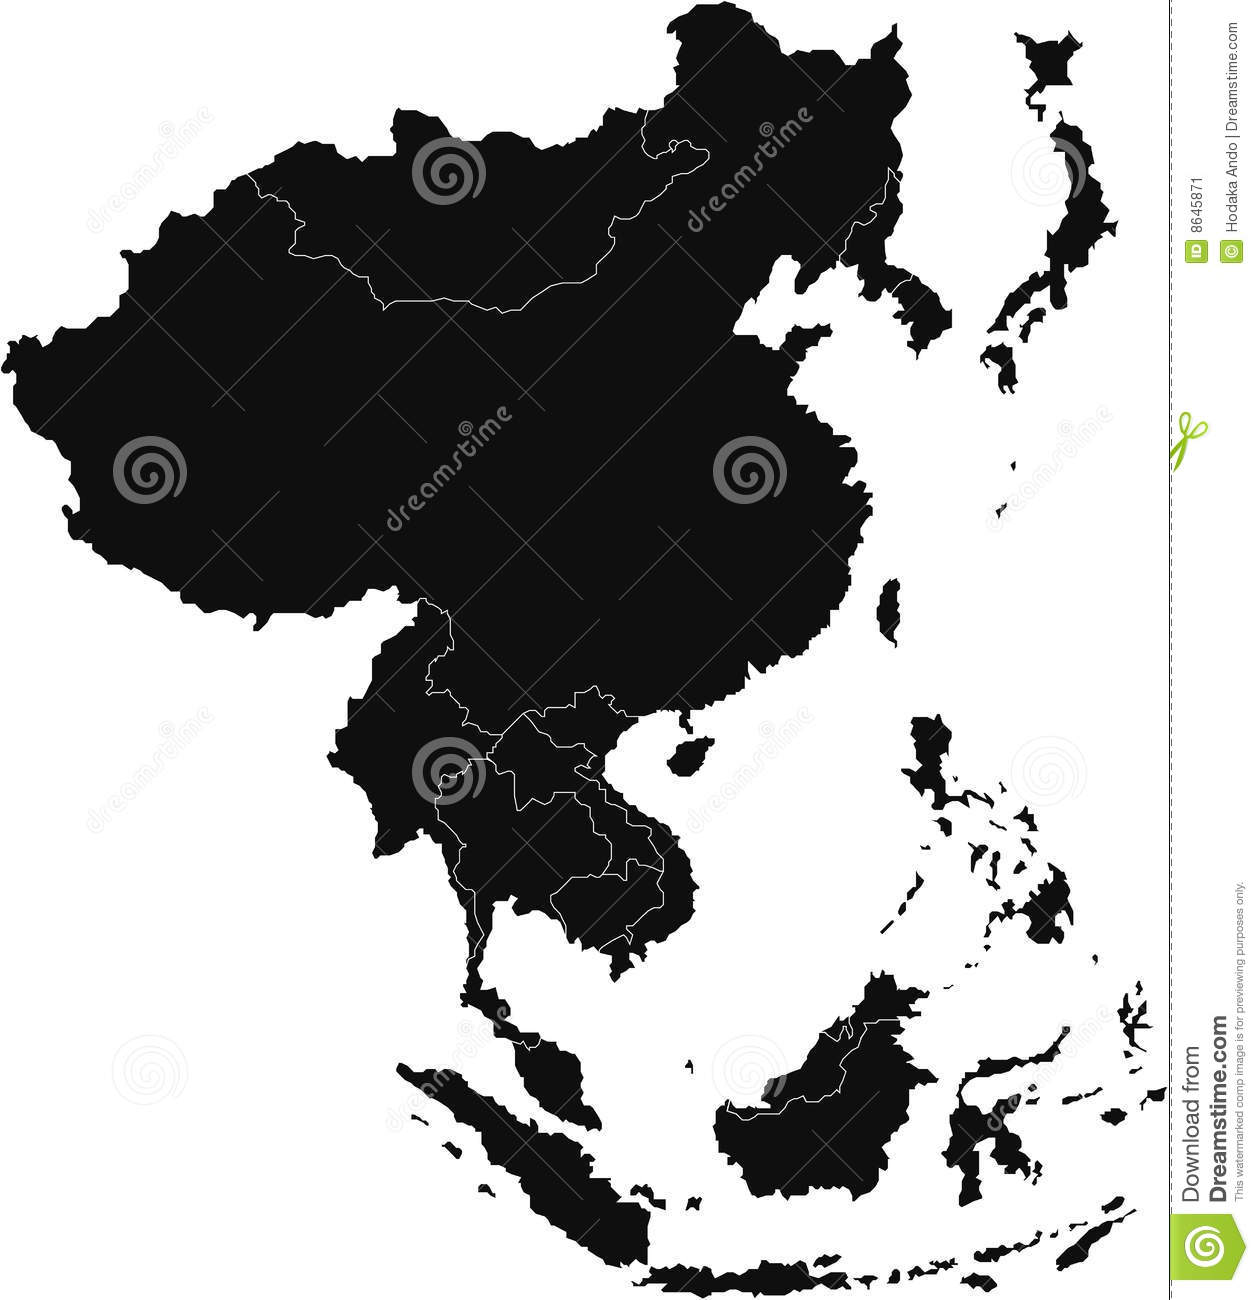 East Asia map stock vector. Illustration of cambodia, pakistan